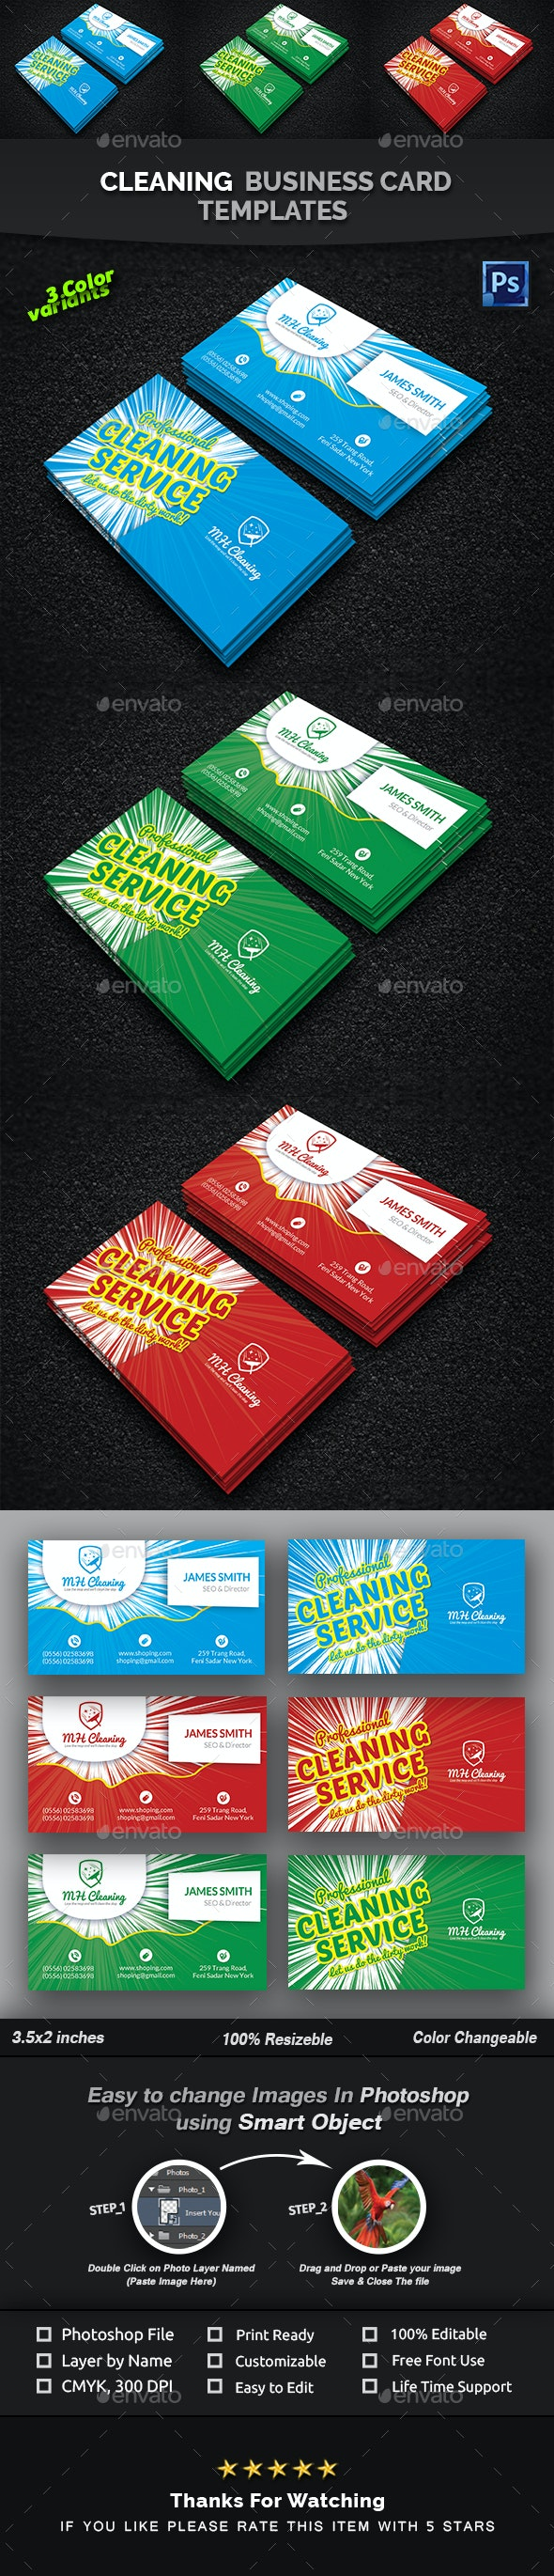 Cleaning Services Business Card Templates - Creative Business Cards